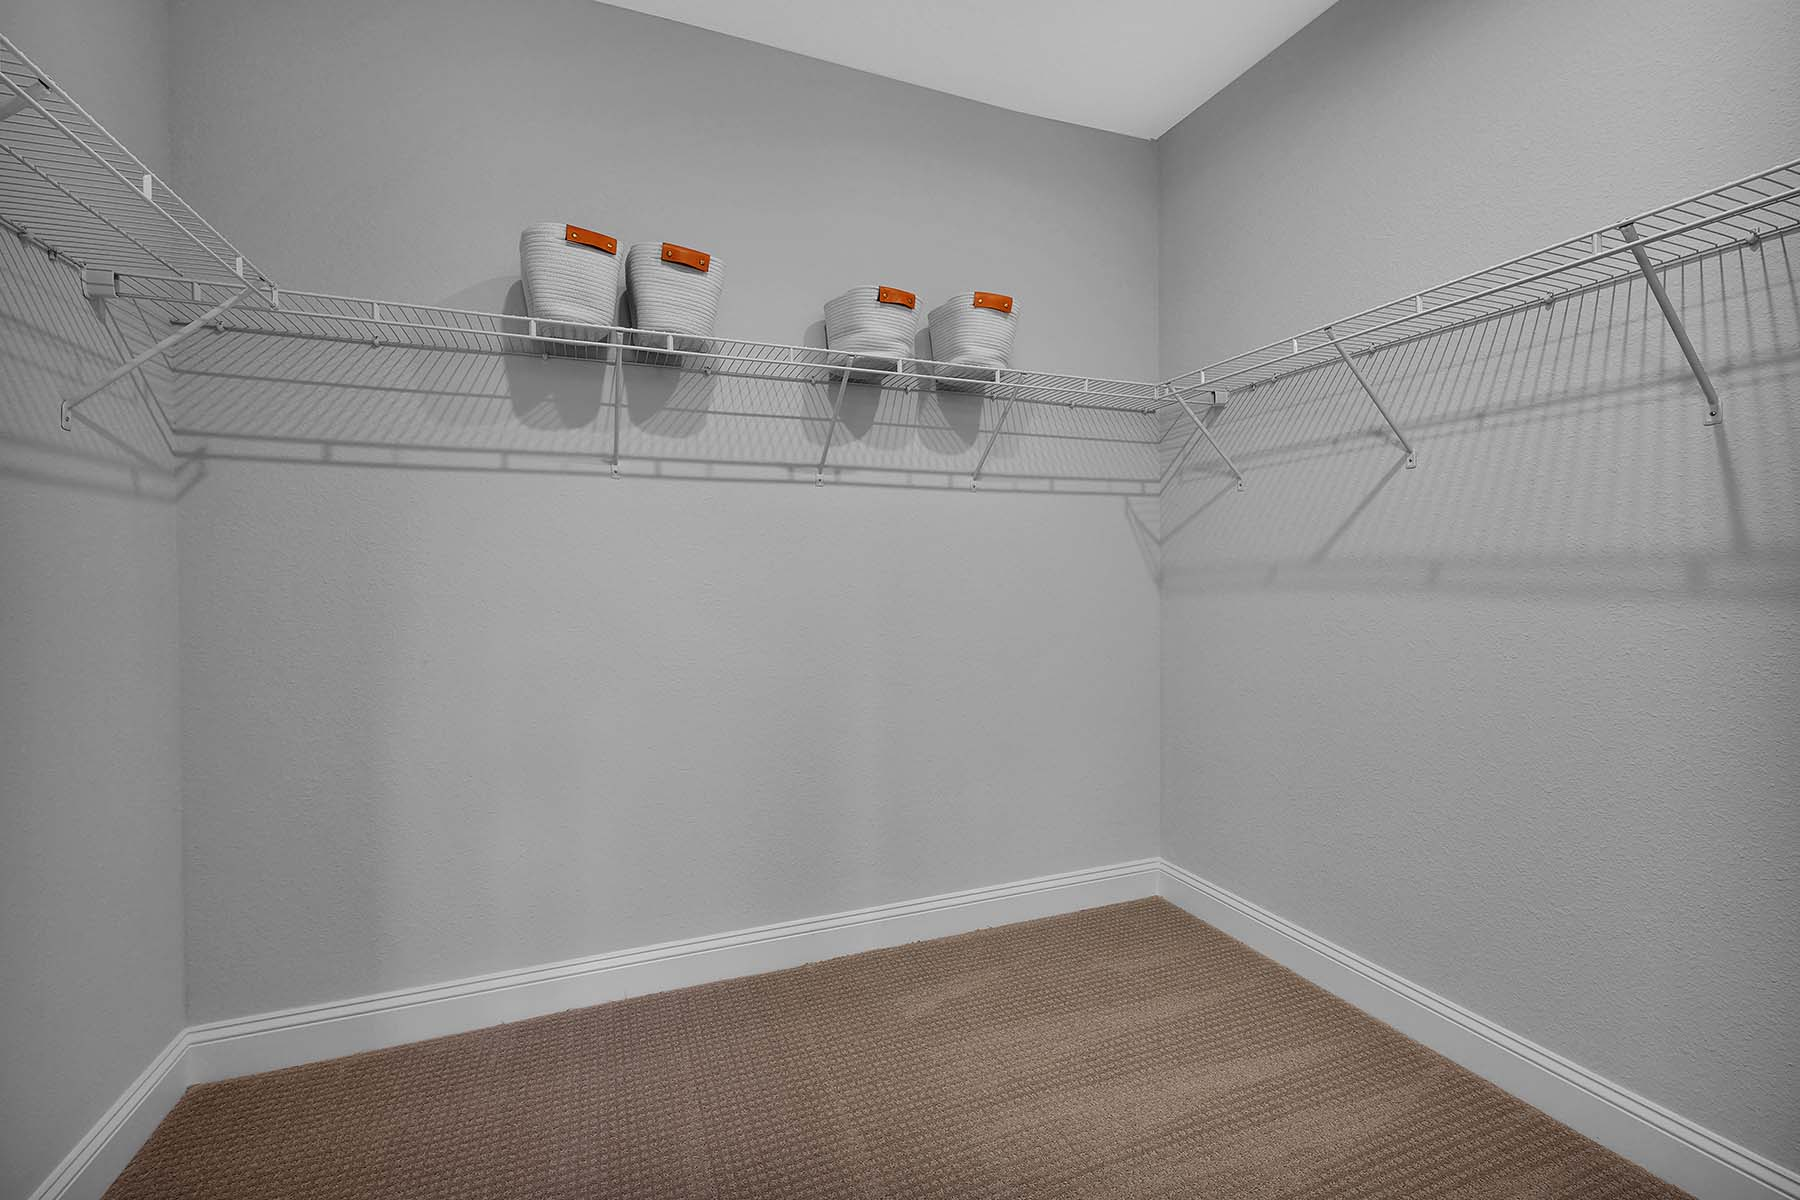 Waverly Plan Closet at Pablo Cove in Jacksonville Florida by Mattamy Homes